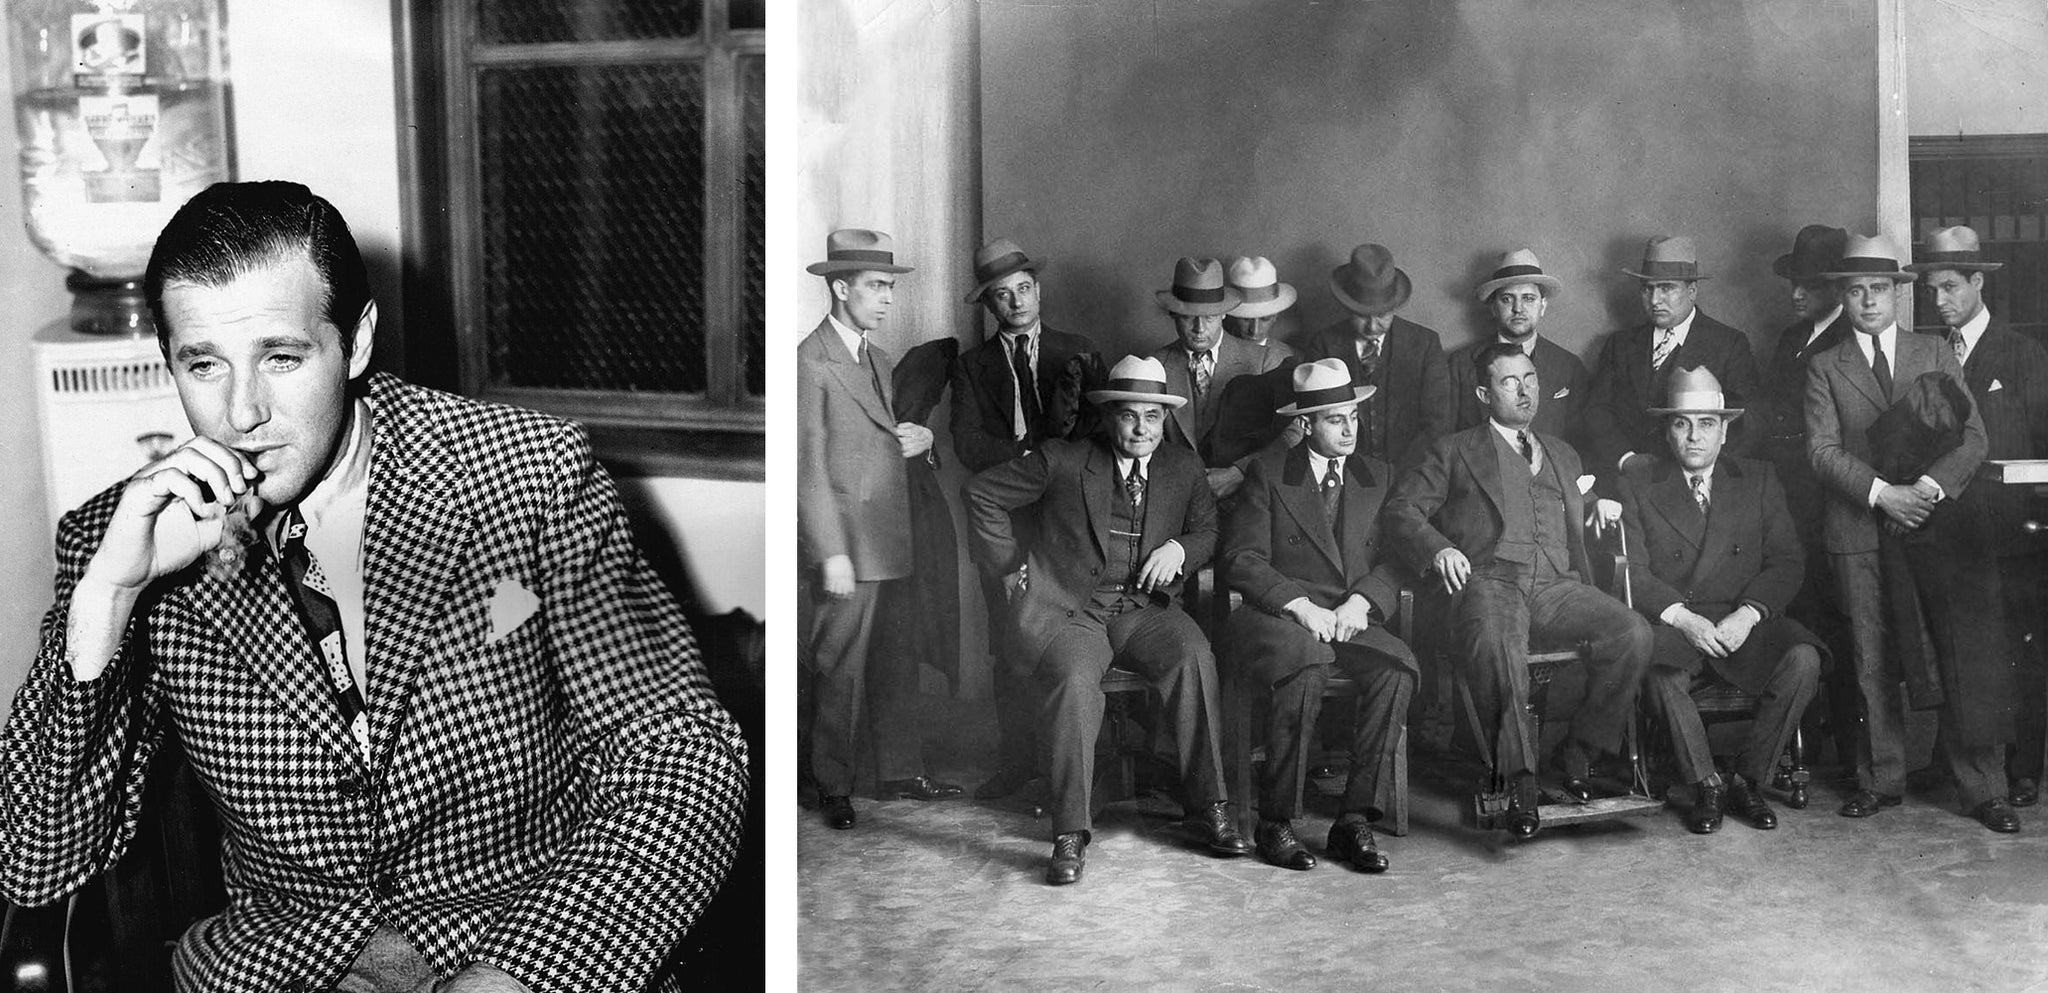 bugsy siegel and mobsters egm cigars